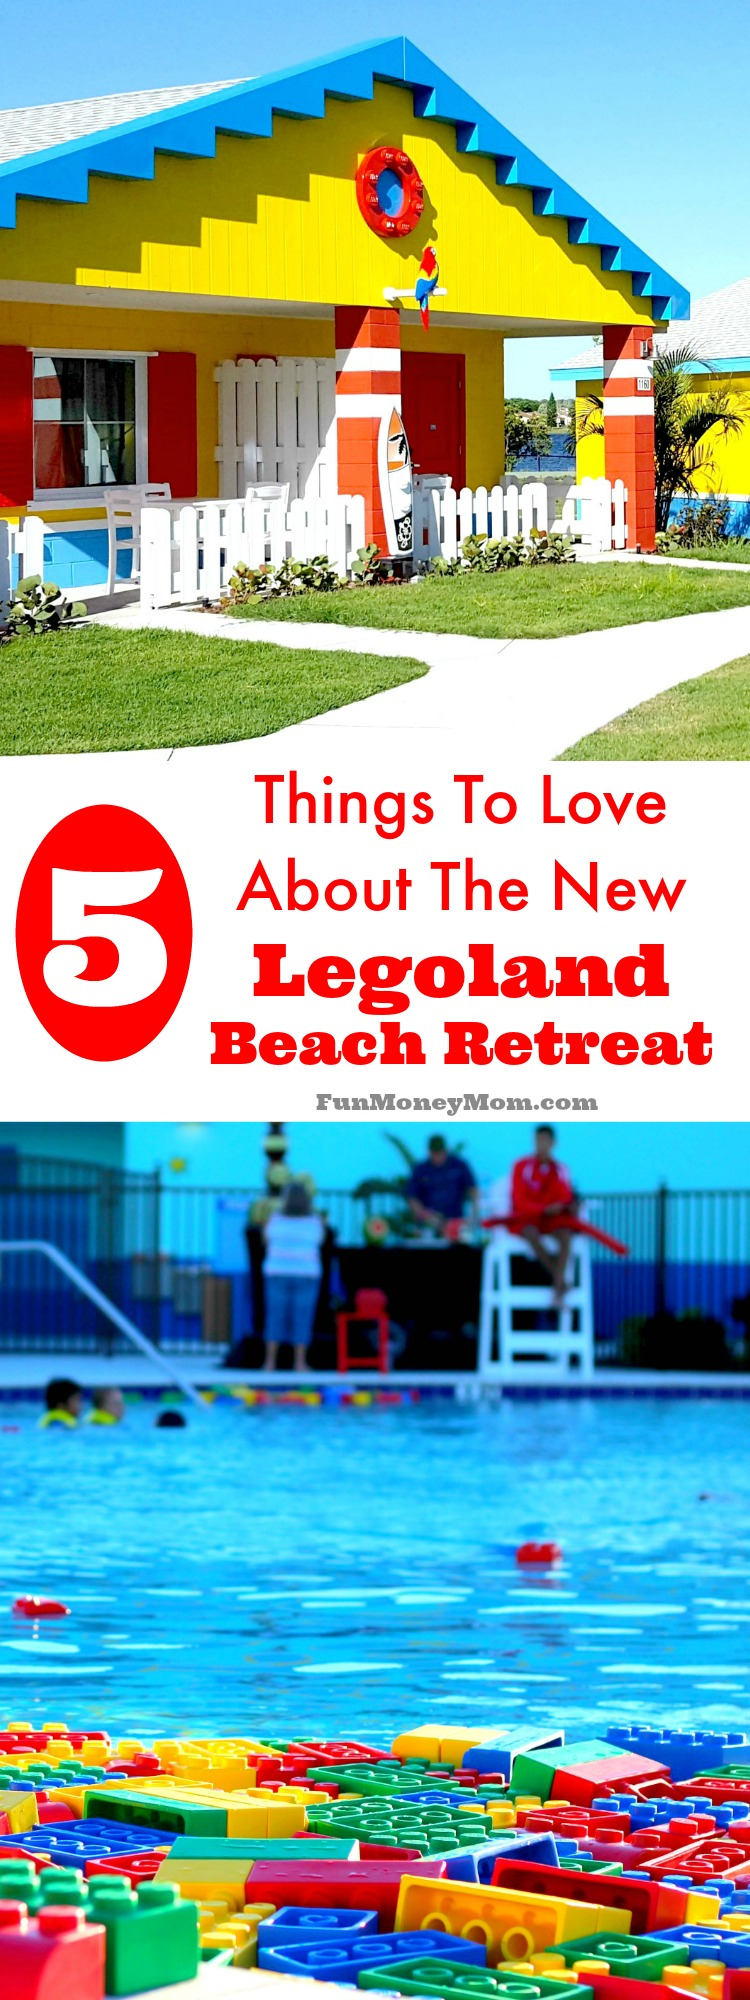 Have you ever wanted to stay in a Lego house? Now you can if you visit the new Legoland Beach Retreat at Legoland Florida. Find out what makes this new Orlando hotel a place you're not going to want to miss!